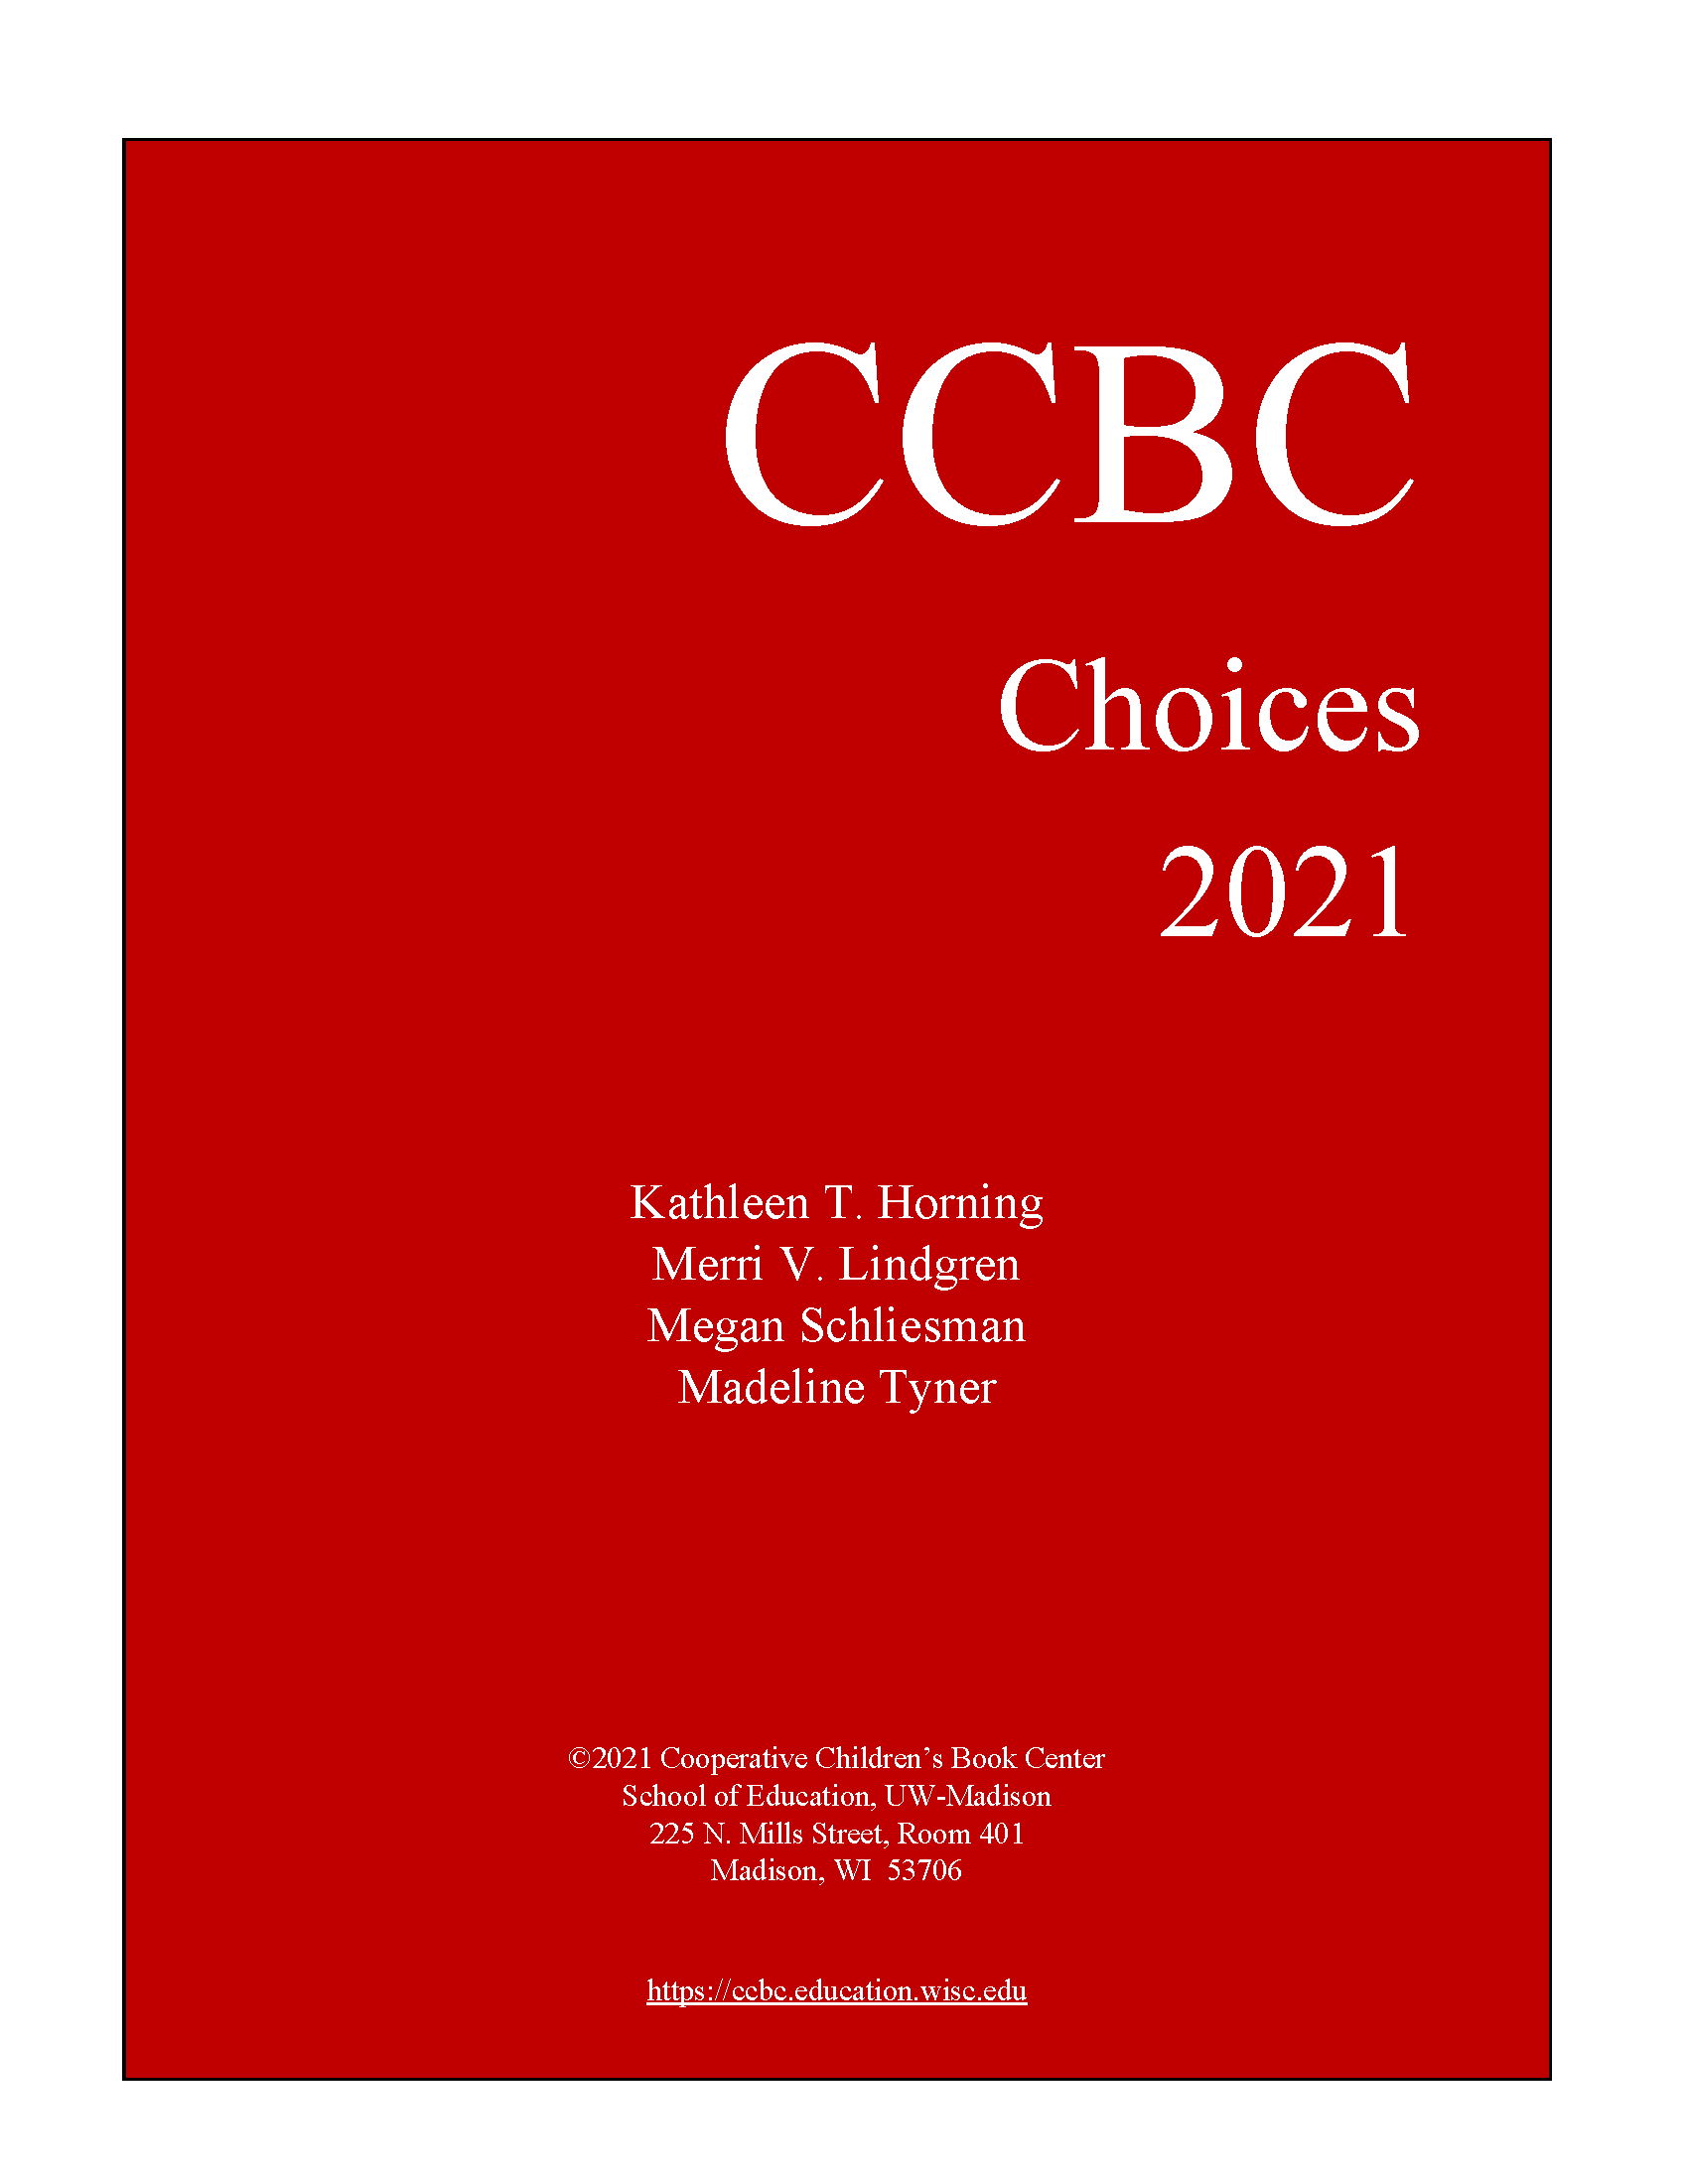 All of a Sudden and Forever among CCBC Children's Choices 2021